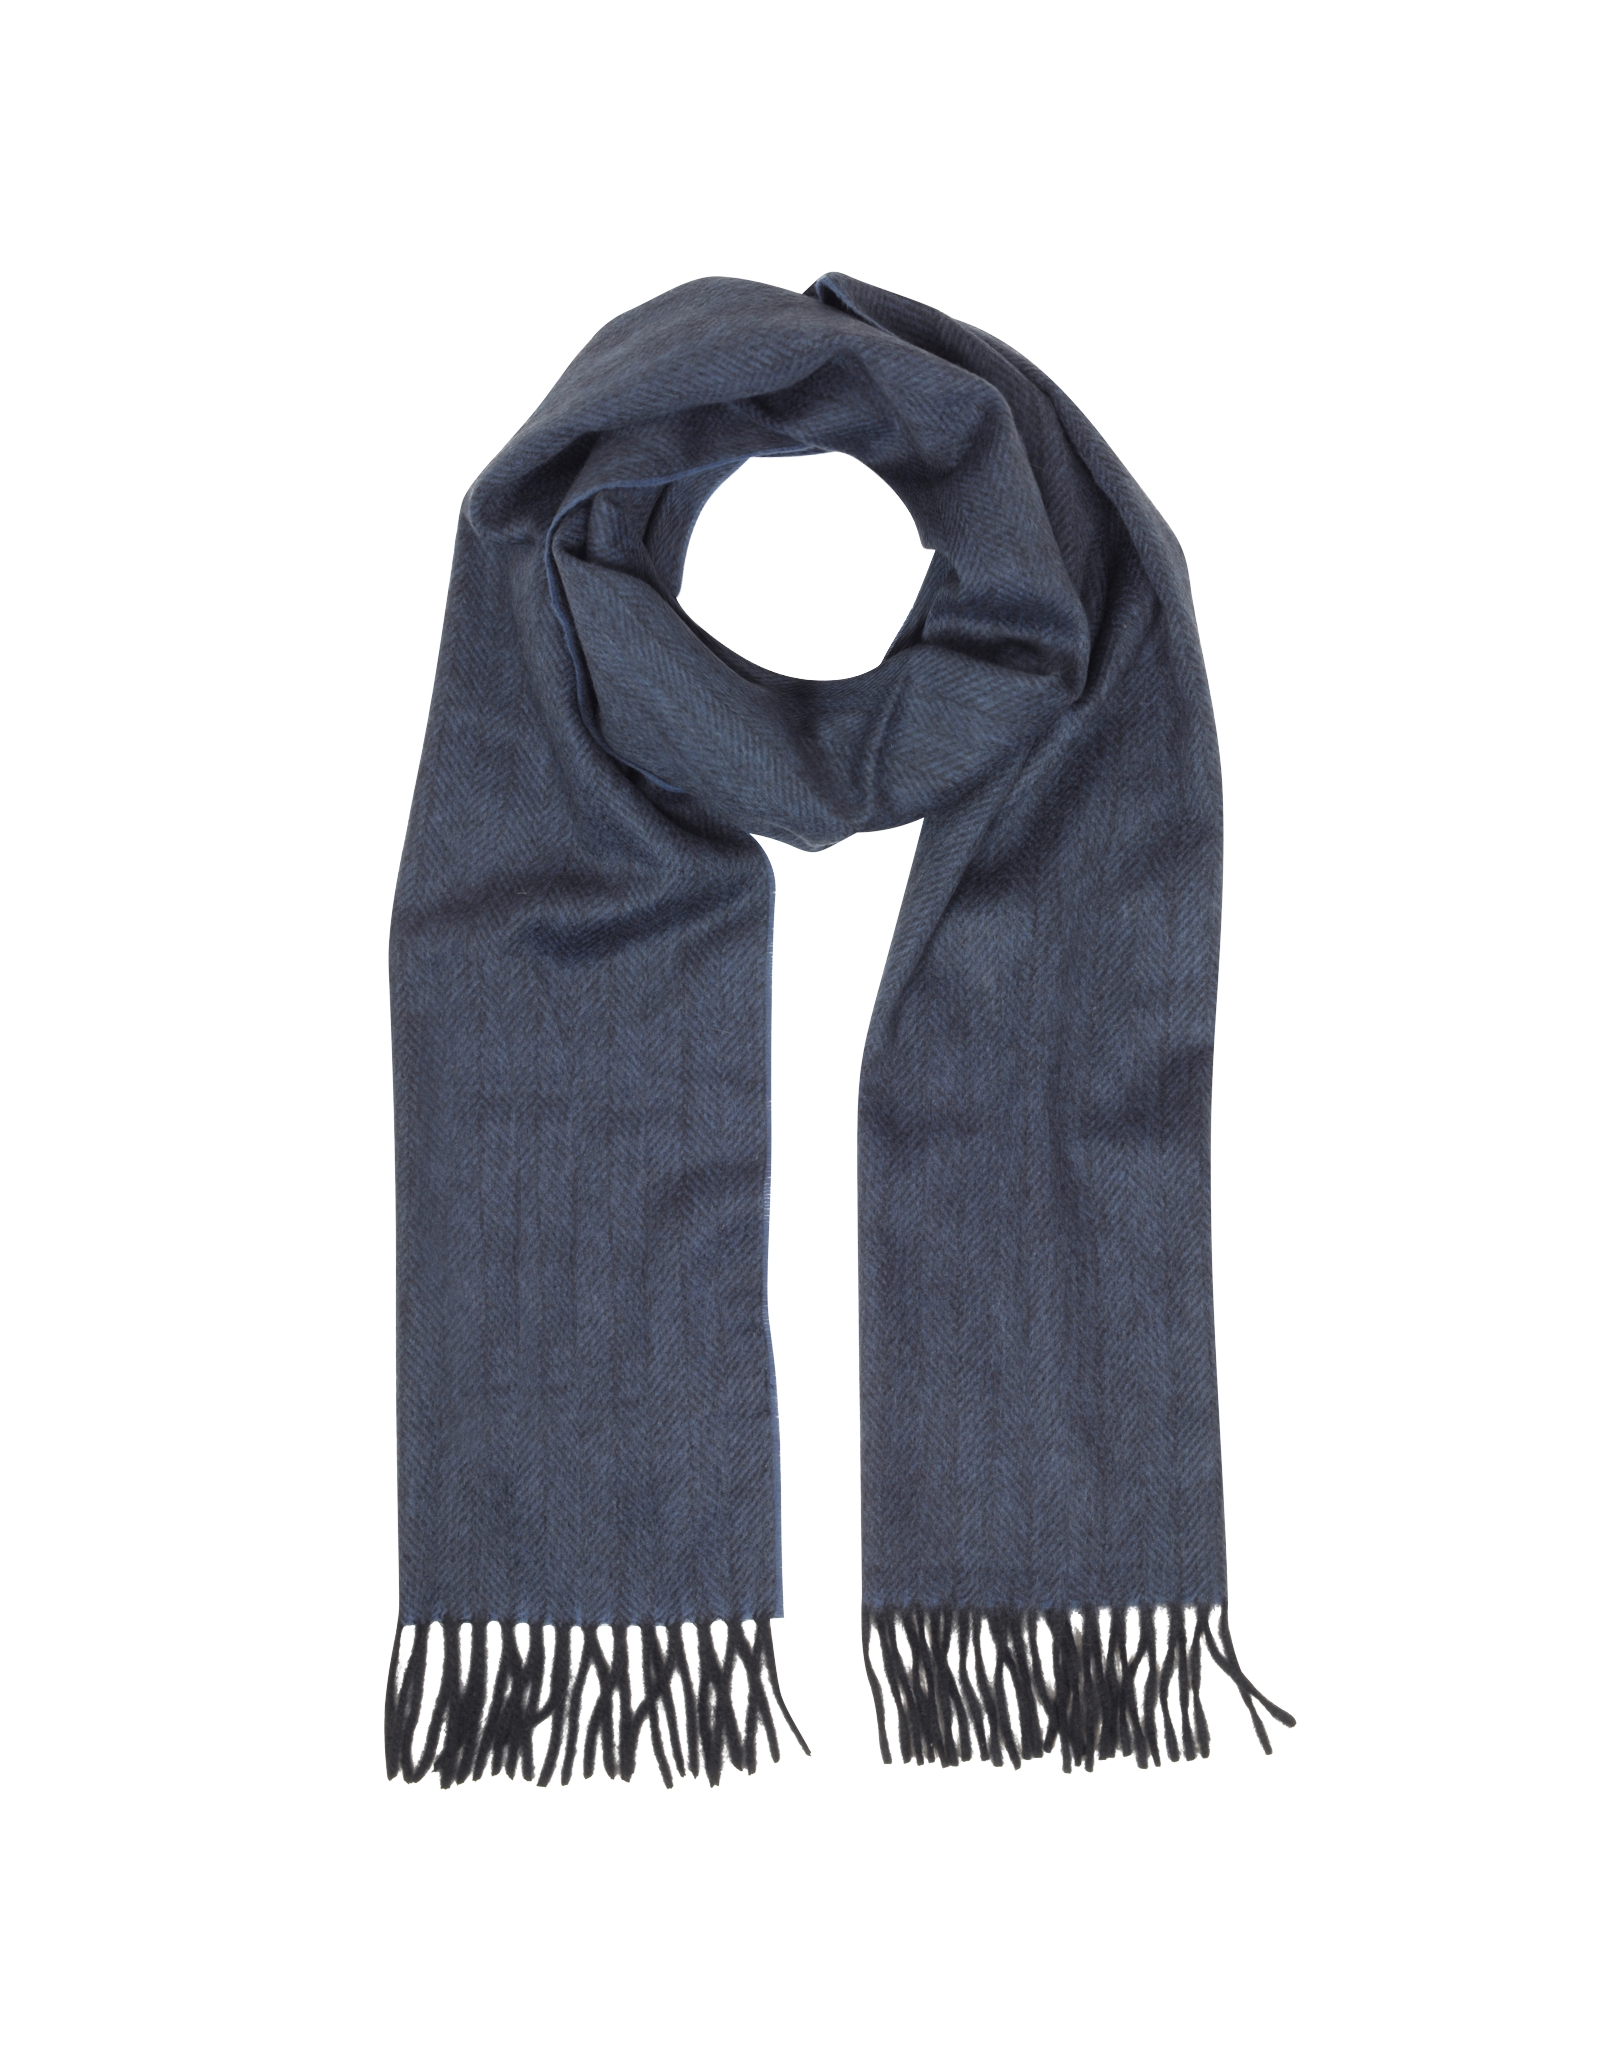 Lanvin Dark Blue And Black Herringbone Cashmere Fringed Men's ...